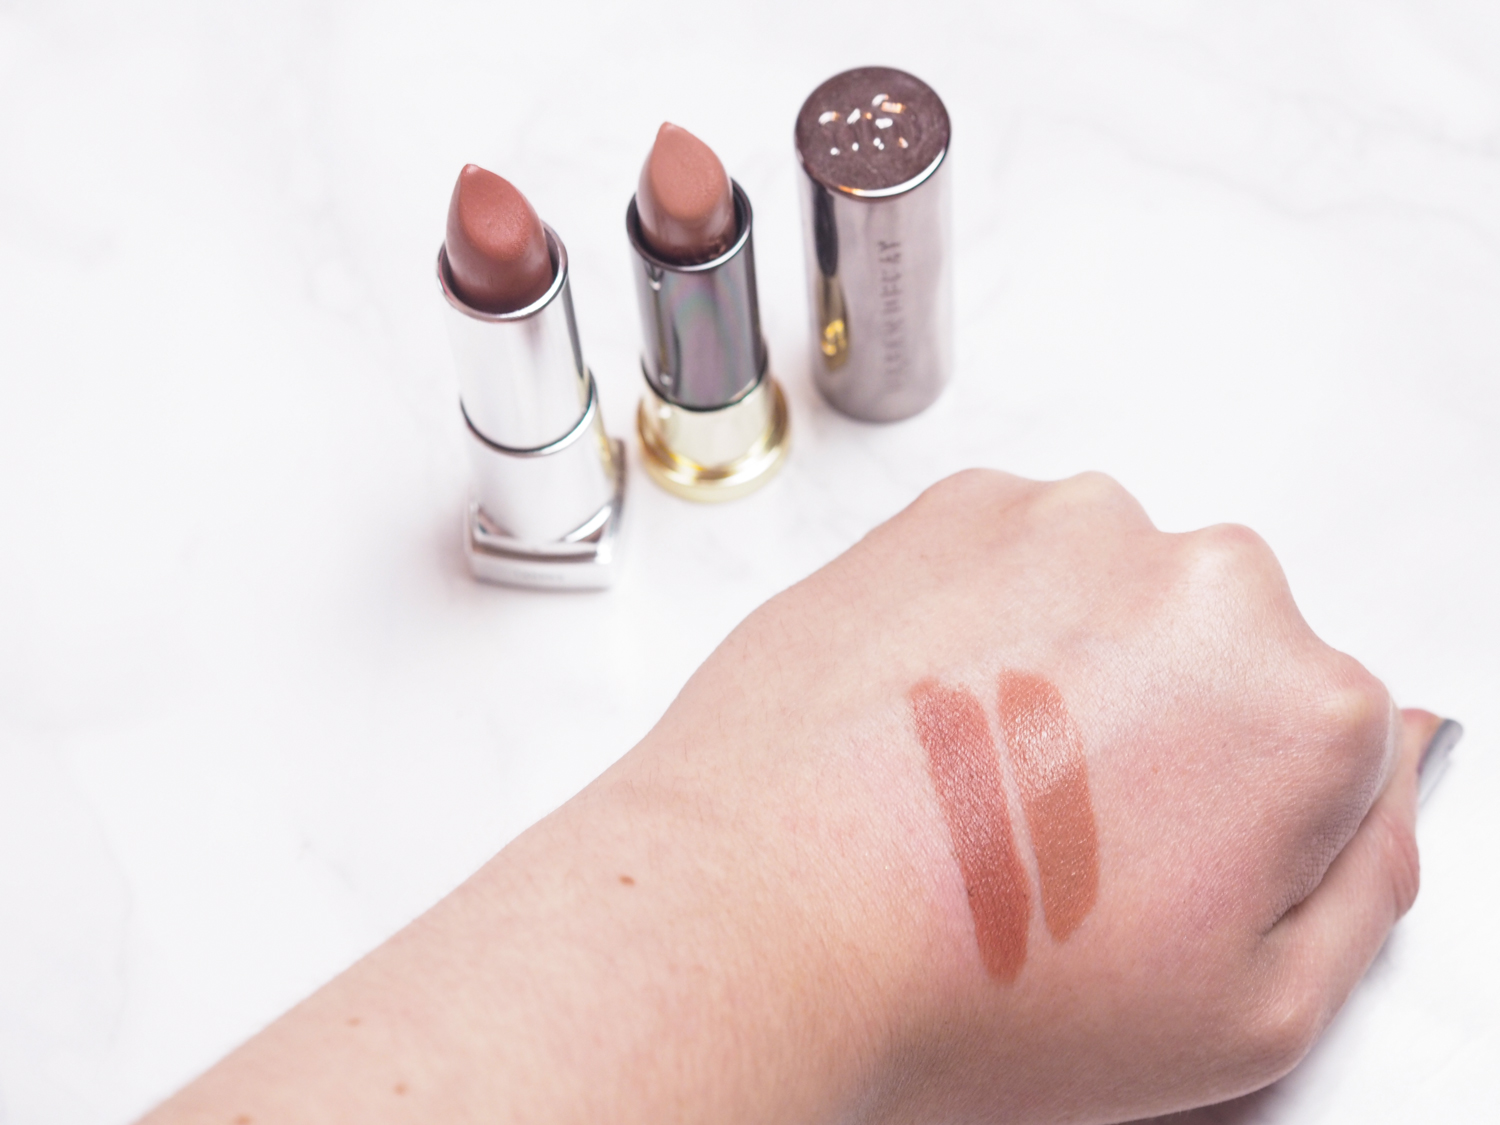 Urban Decay Stark Naked Dupe Maybelline Clay Crush